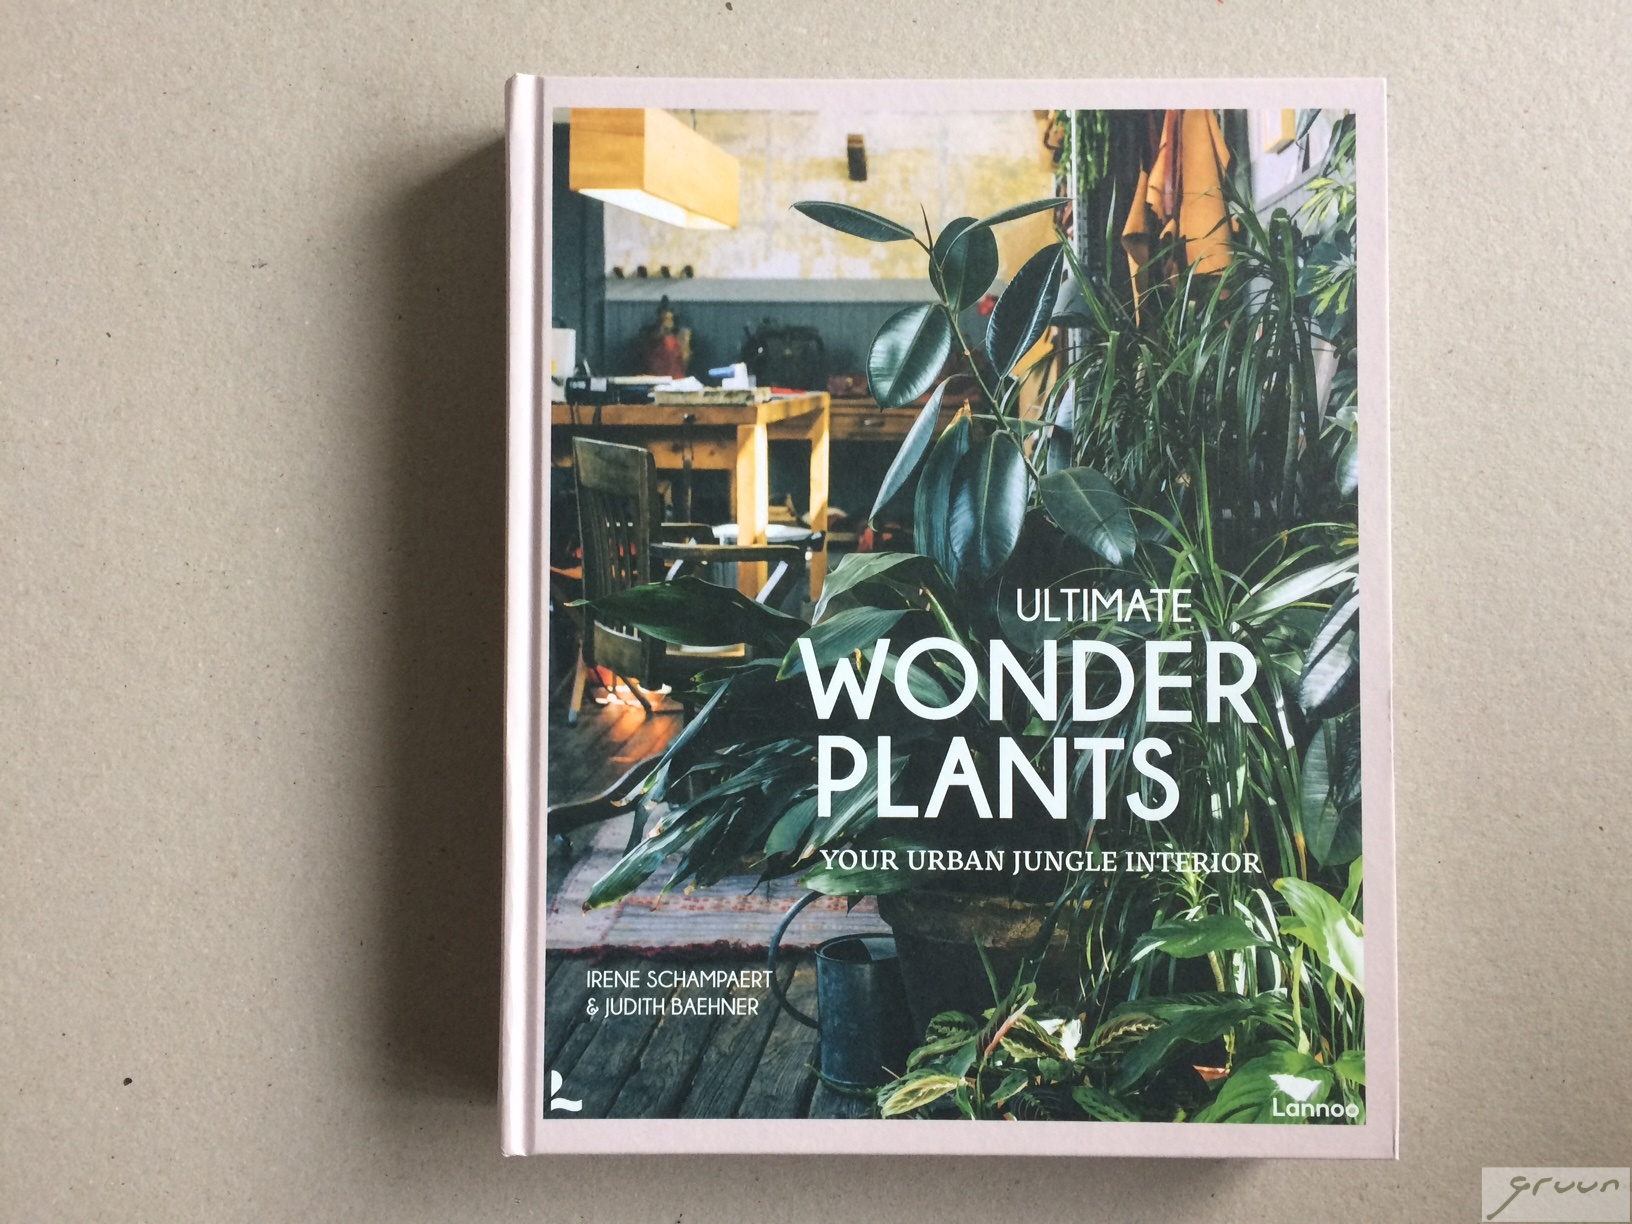 UltimateWonderPlants cover